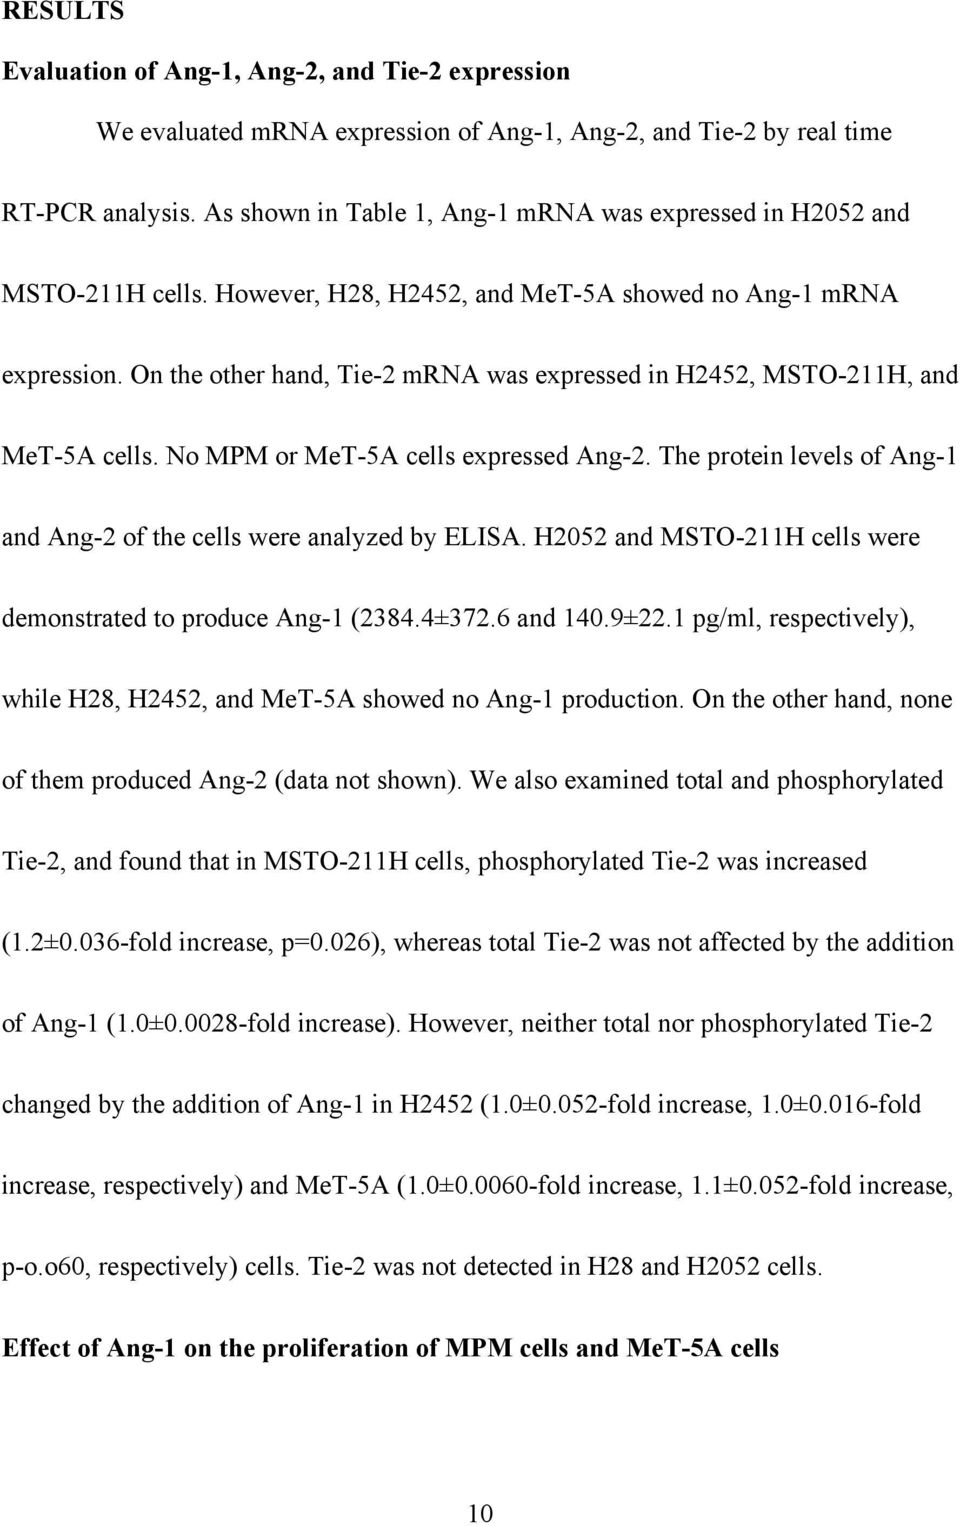 On the other hand, Tie-2 mrna was expressed in H2452, MSTO-211H, and MeT-5A cells. No MPM or MeT-5A cells expressed Ang-2. The protein levels of Ang-1 and Ang-2 of the cells were analyzed by ELISA.